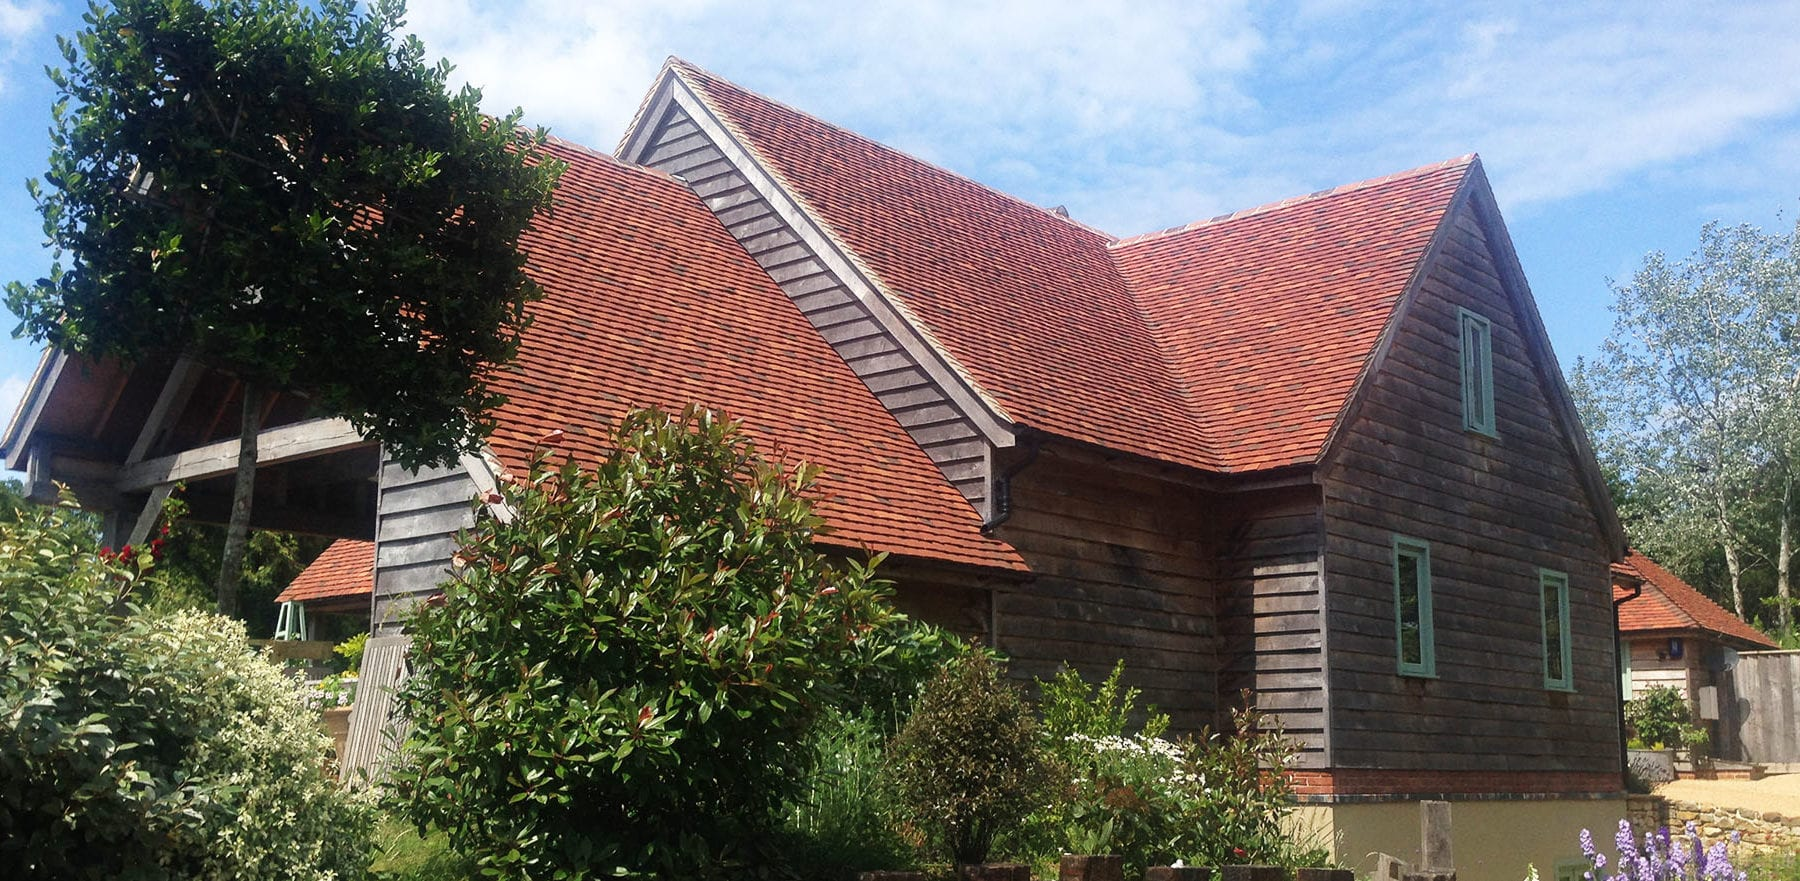 Lifestiles - Handmade Multi Clay Roof Tiles - Stephen Evans Architect, England 5